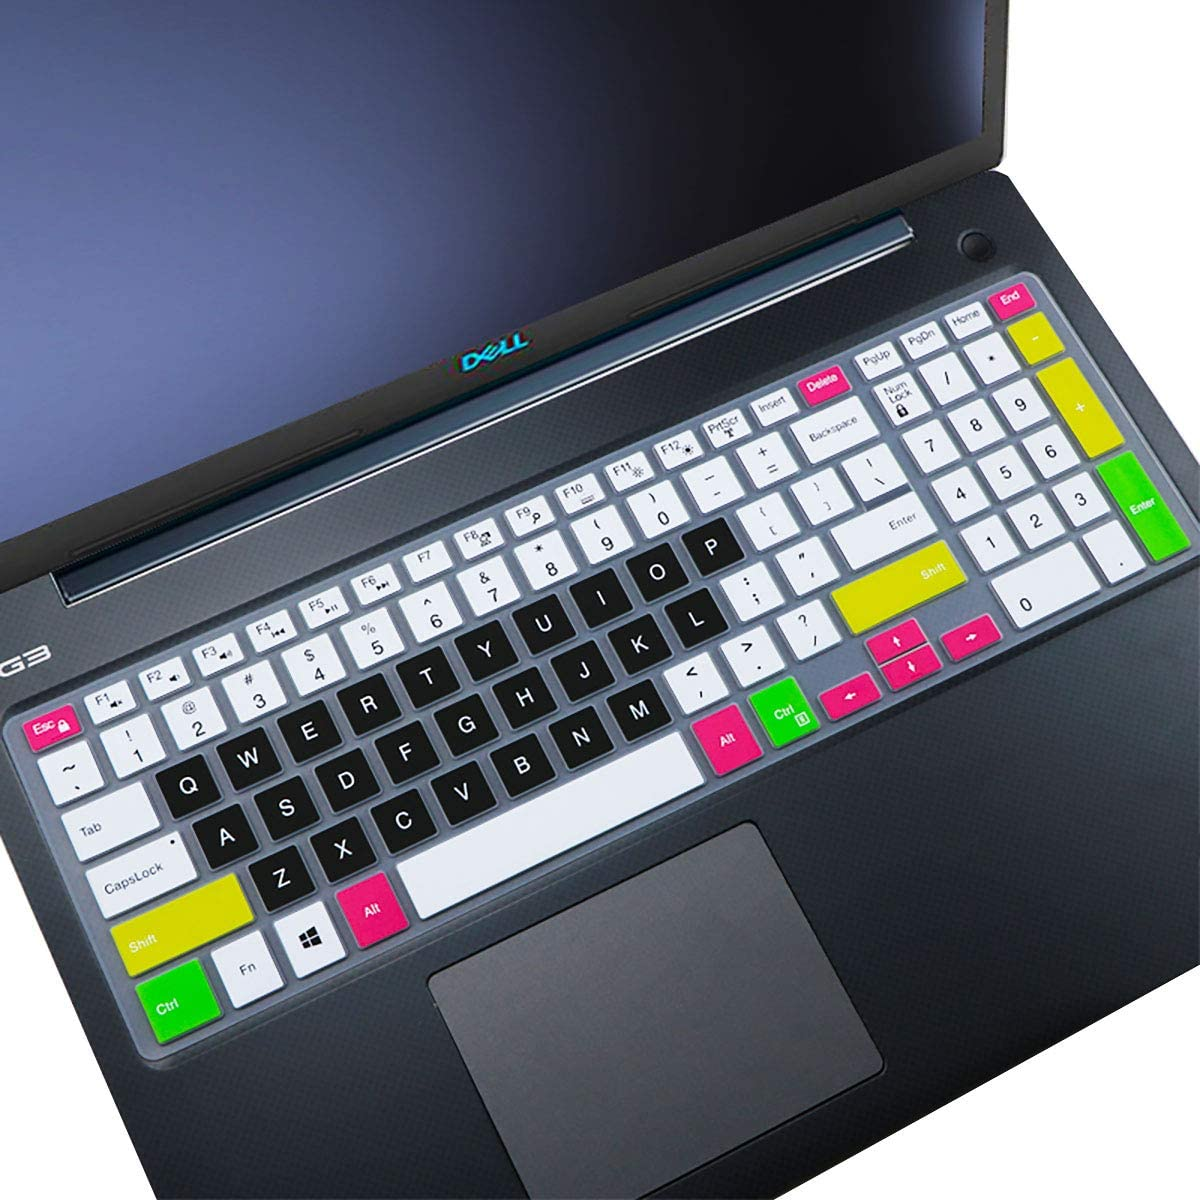 Keyboard Cover fit Dell Inspiron 15 3000 5000 Series/New Inspiron 17 3000 Series/Insprion 17 7786 /Dell G3 15 17 Series/New Dell G5 15 Series/Dell G7 15 17 Series– Candy Black